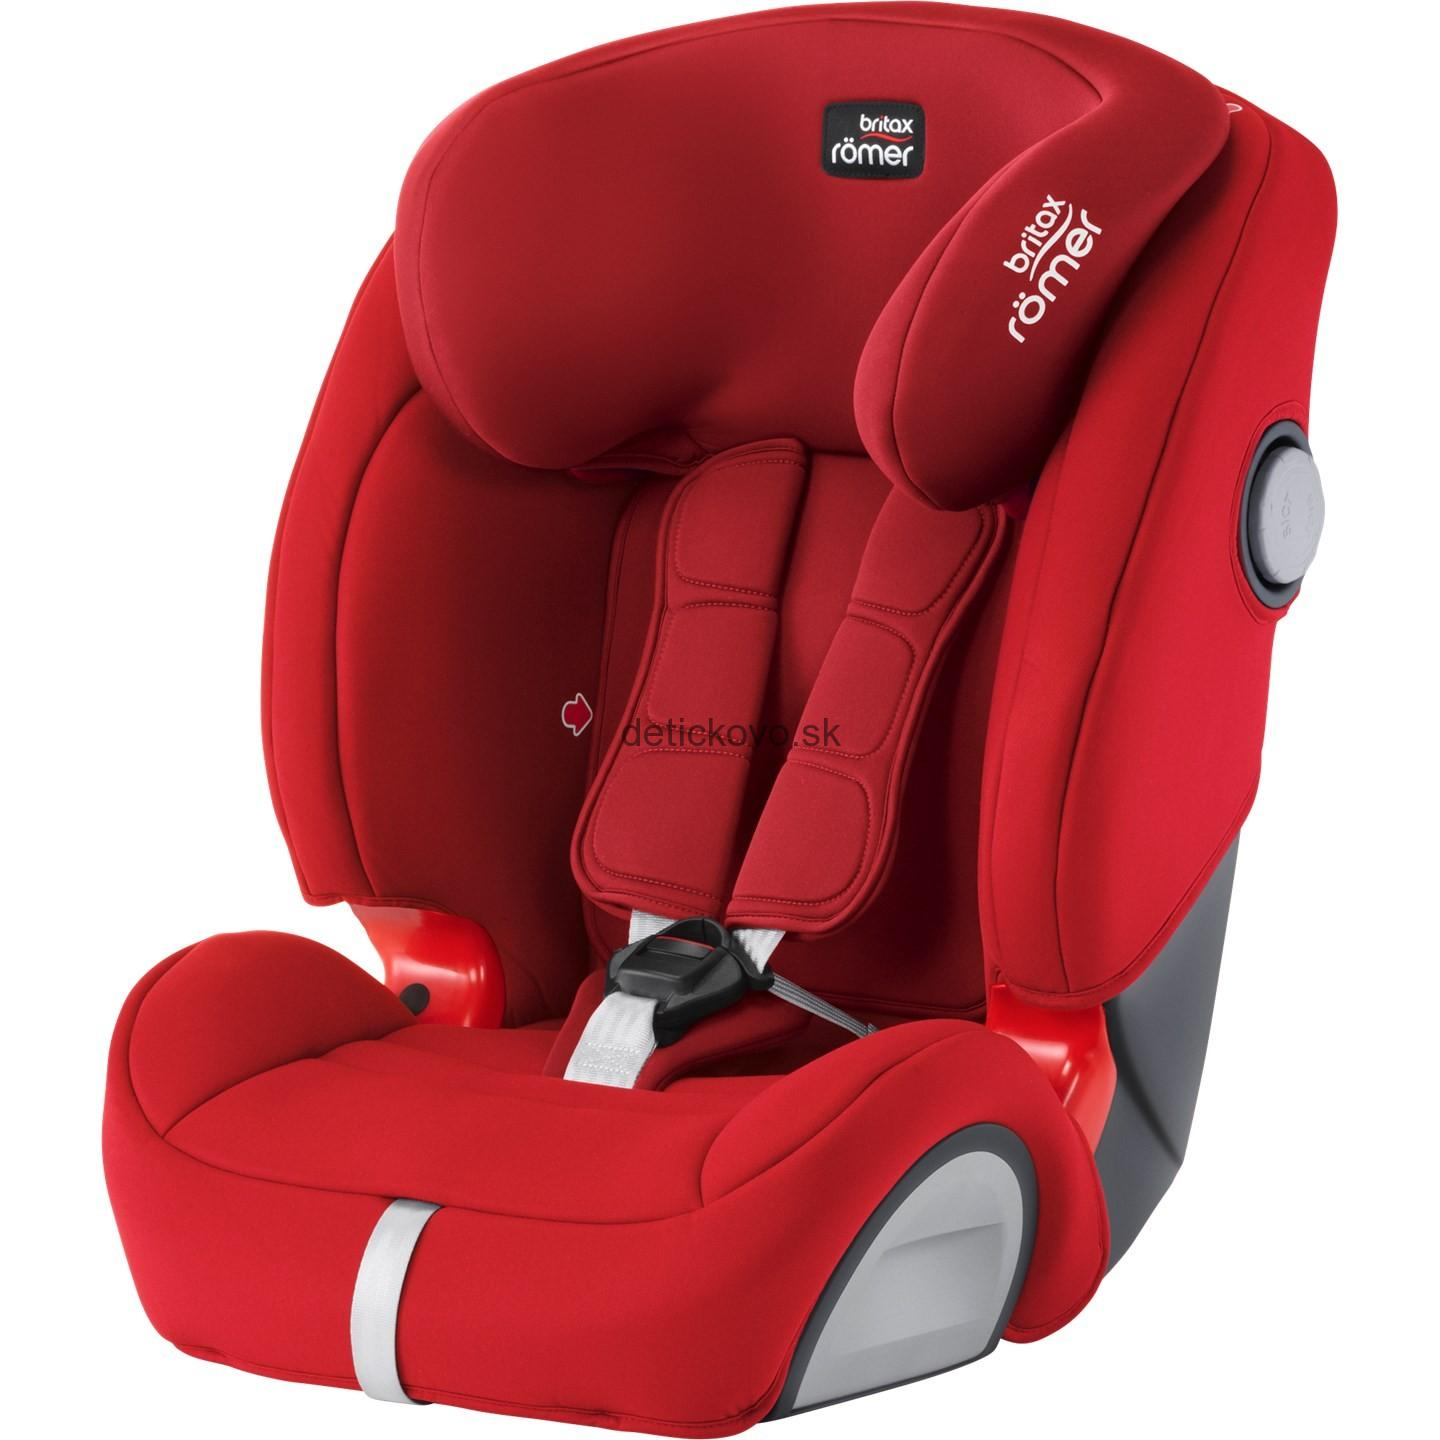 Britax Romer Evolva 1-2-3 SL SICT - Flame Red